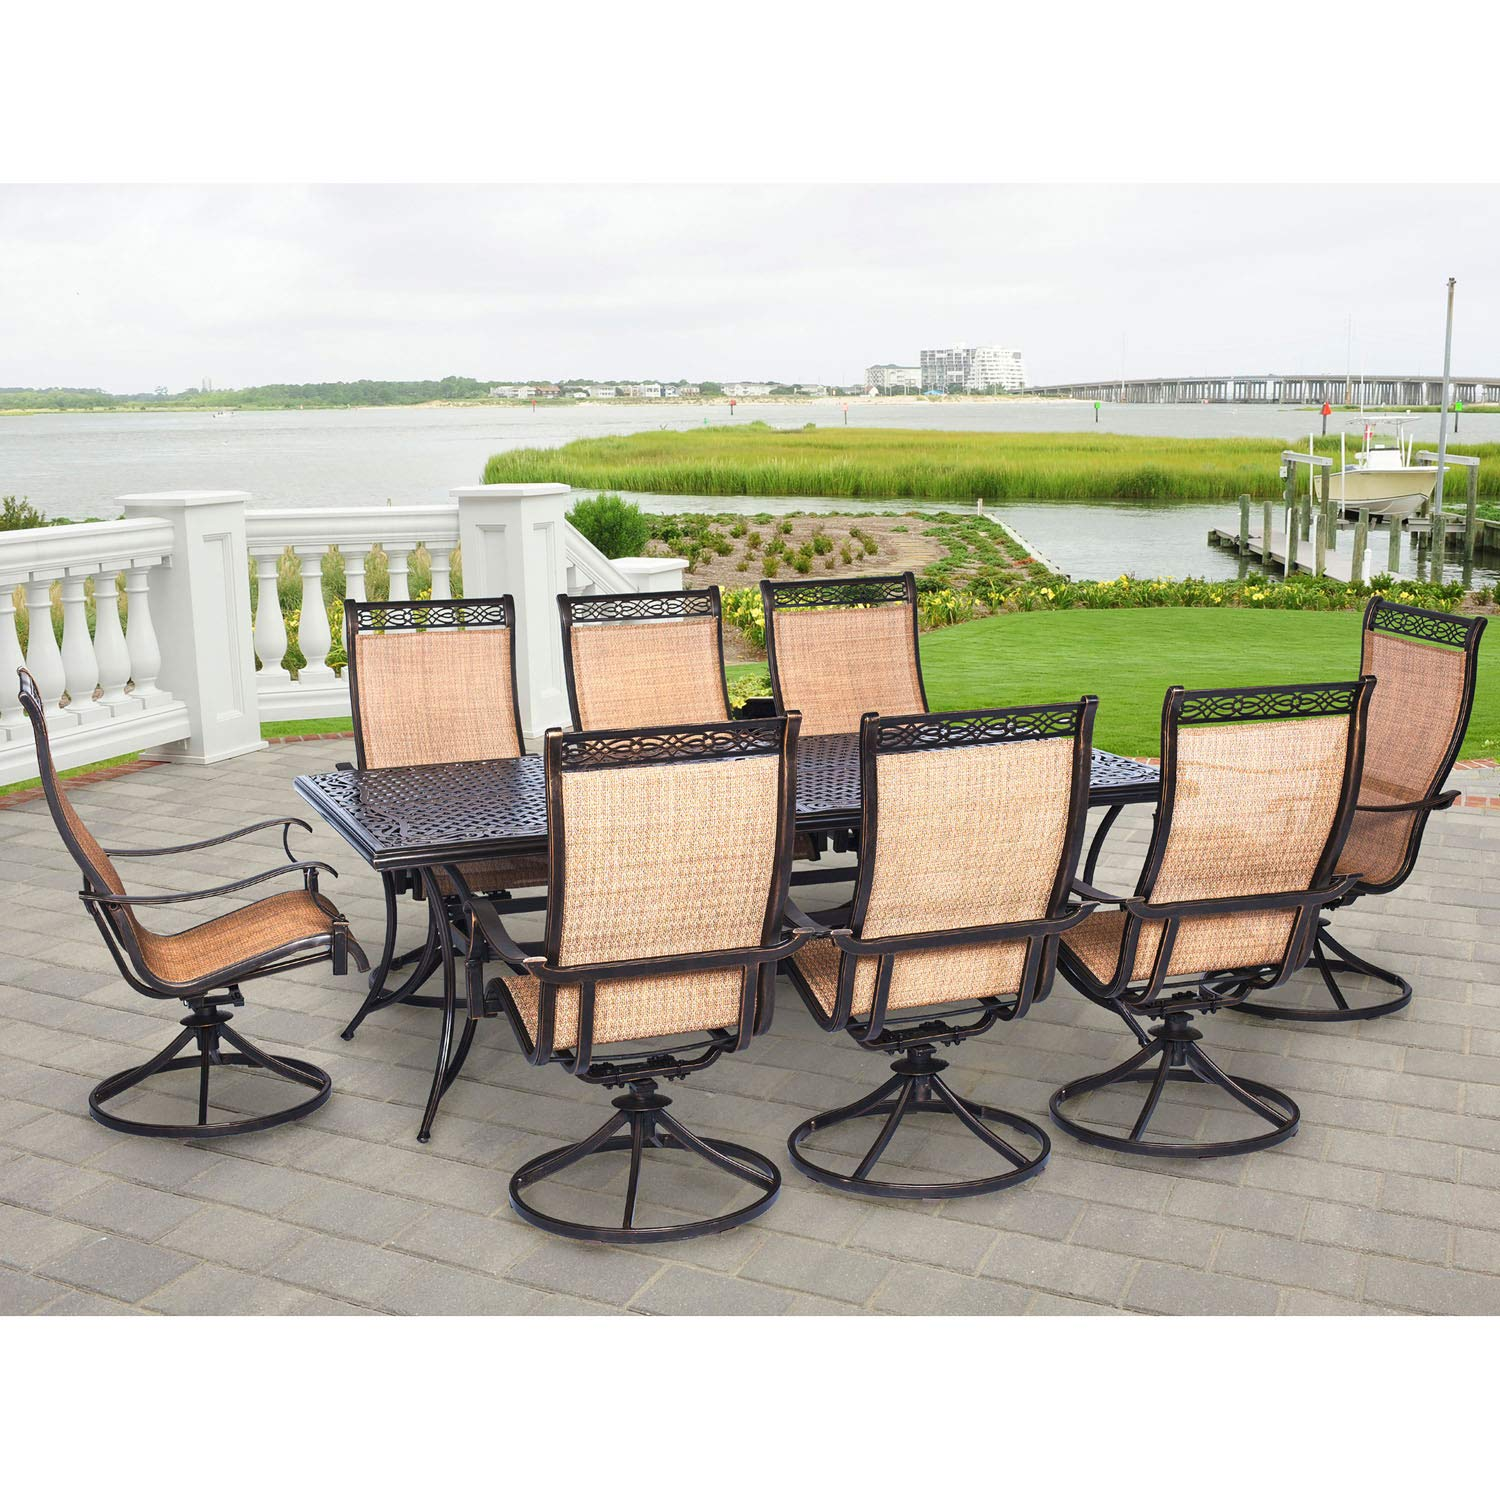 8 chair outdoor dining set